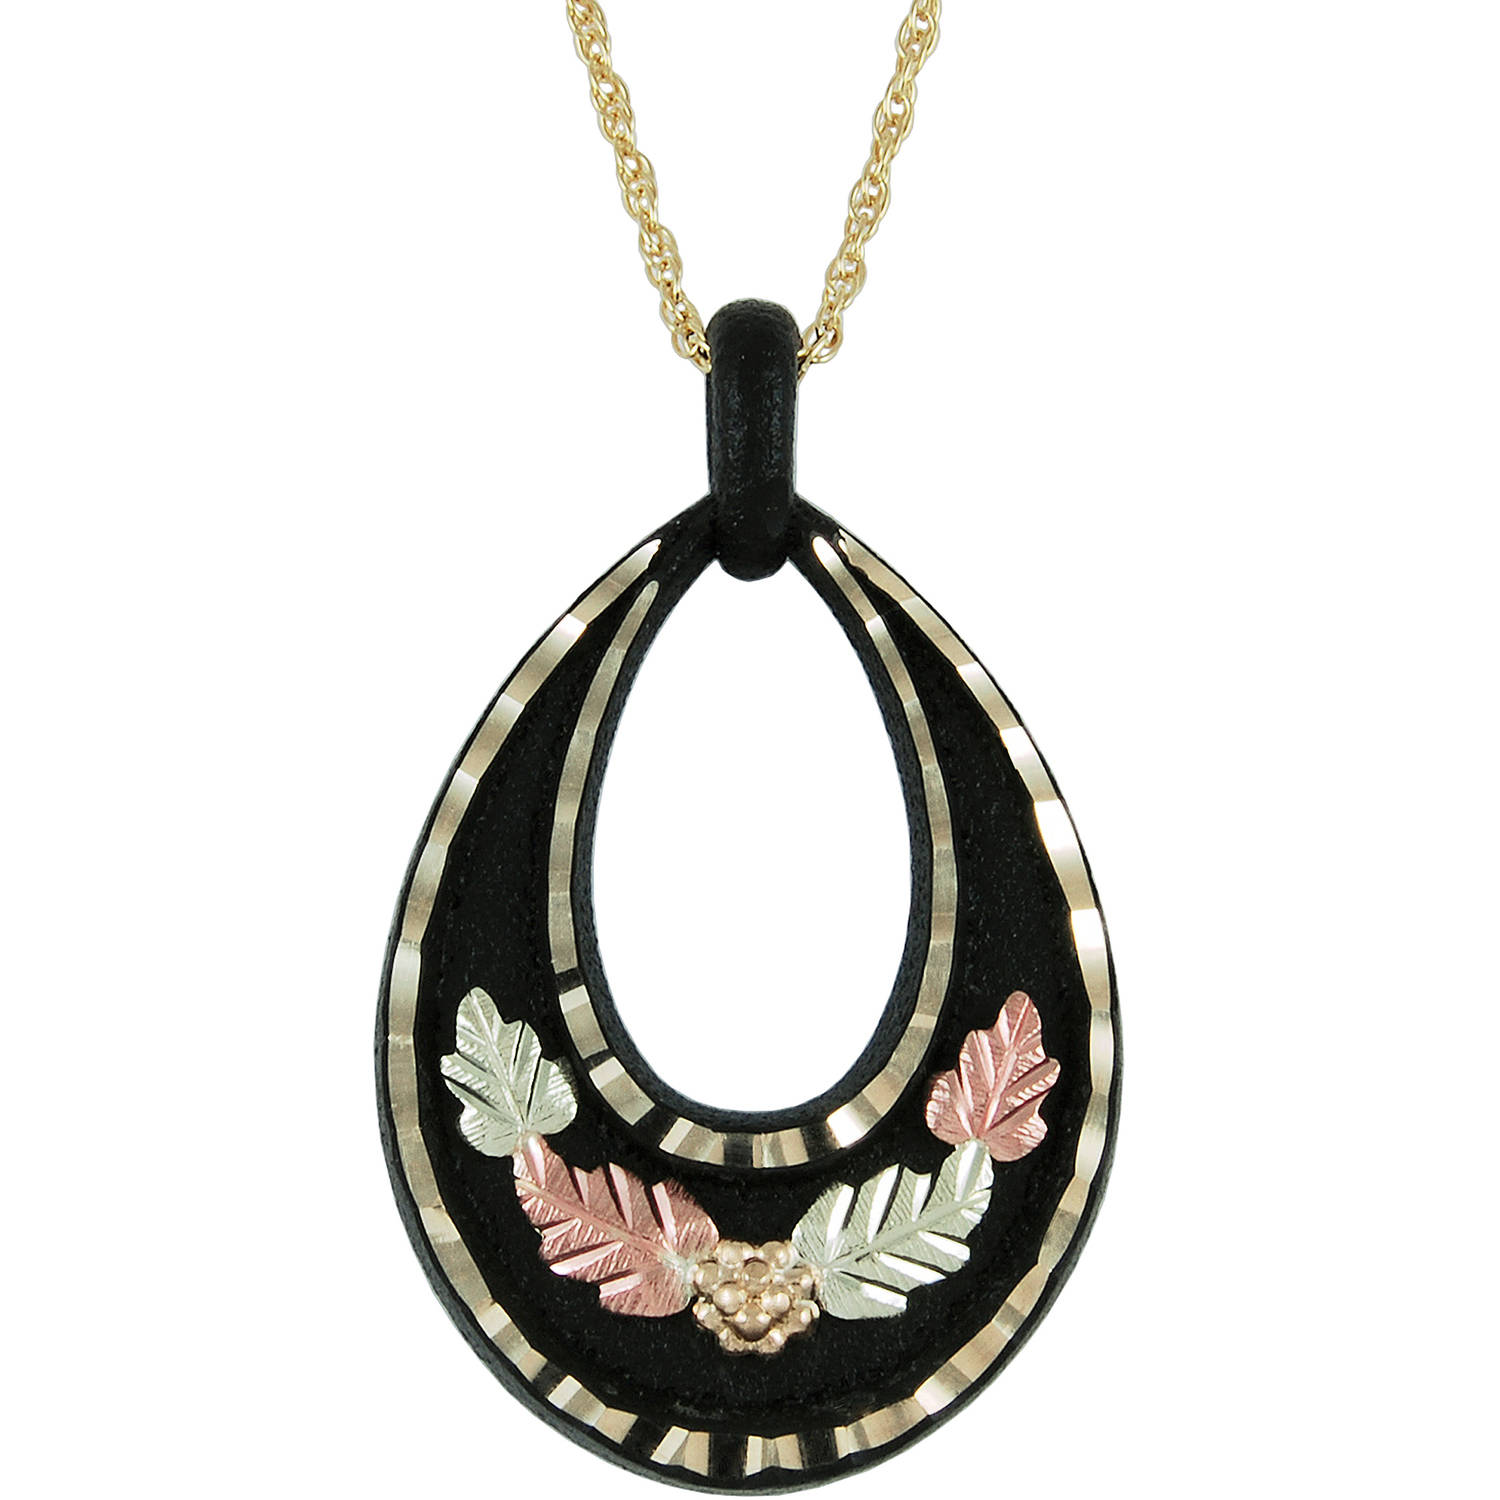 Black Hills Gold Black Powder-Coated Gold-Tone 10kt and 12kt Gold Accented Teardrop-Shaped Pendant, 18""